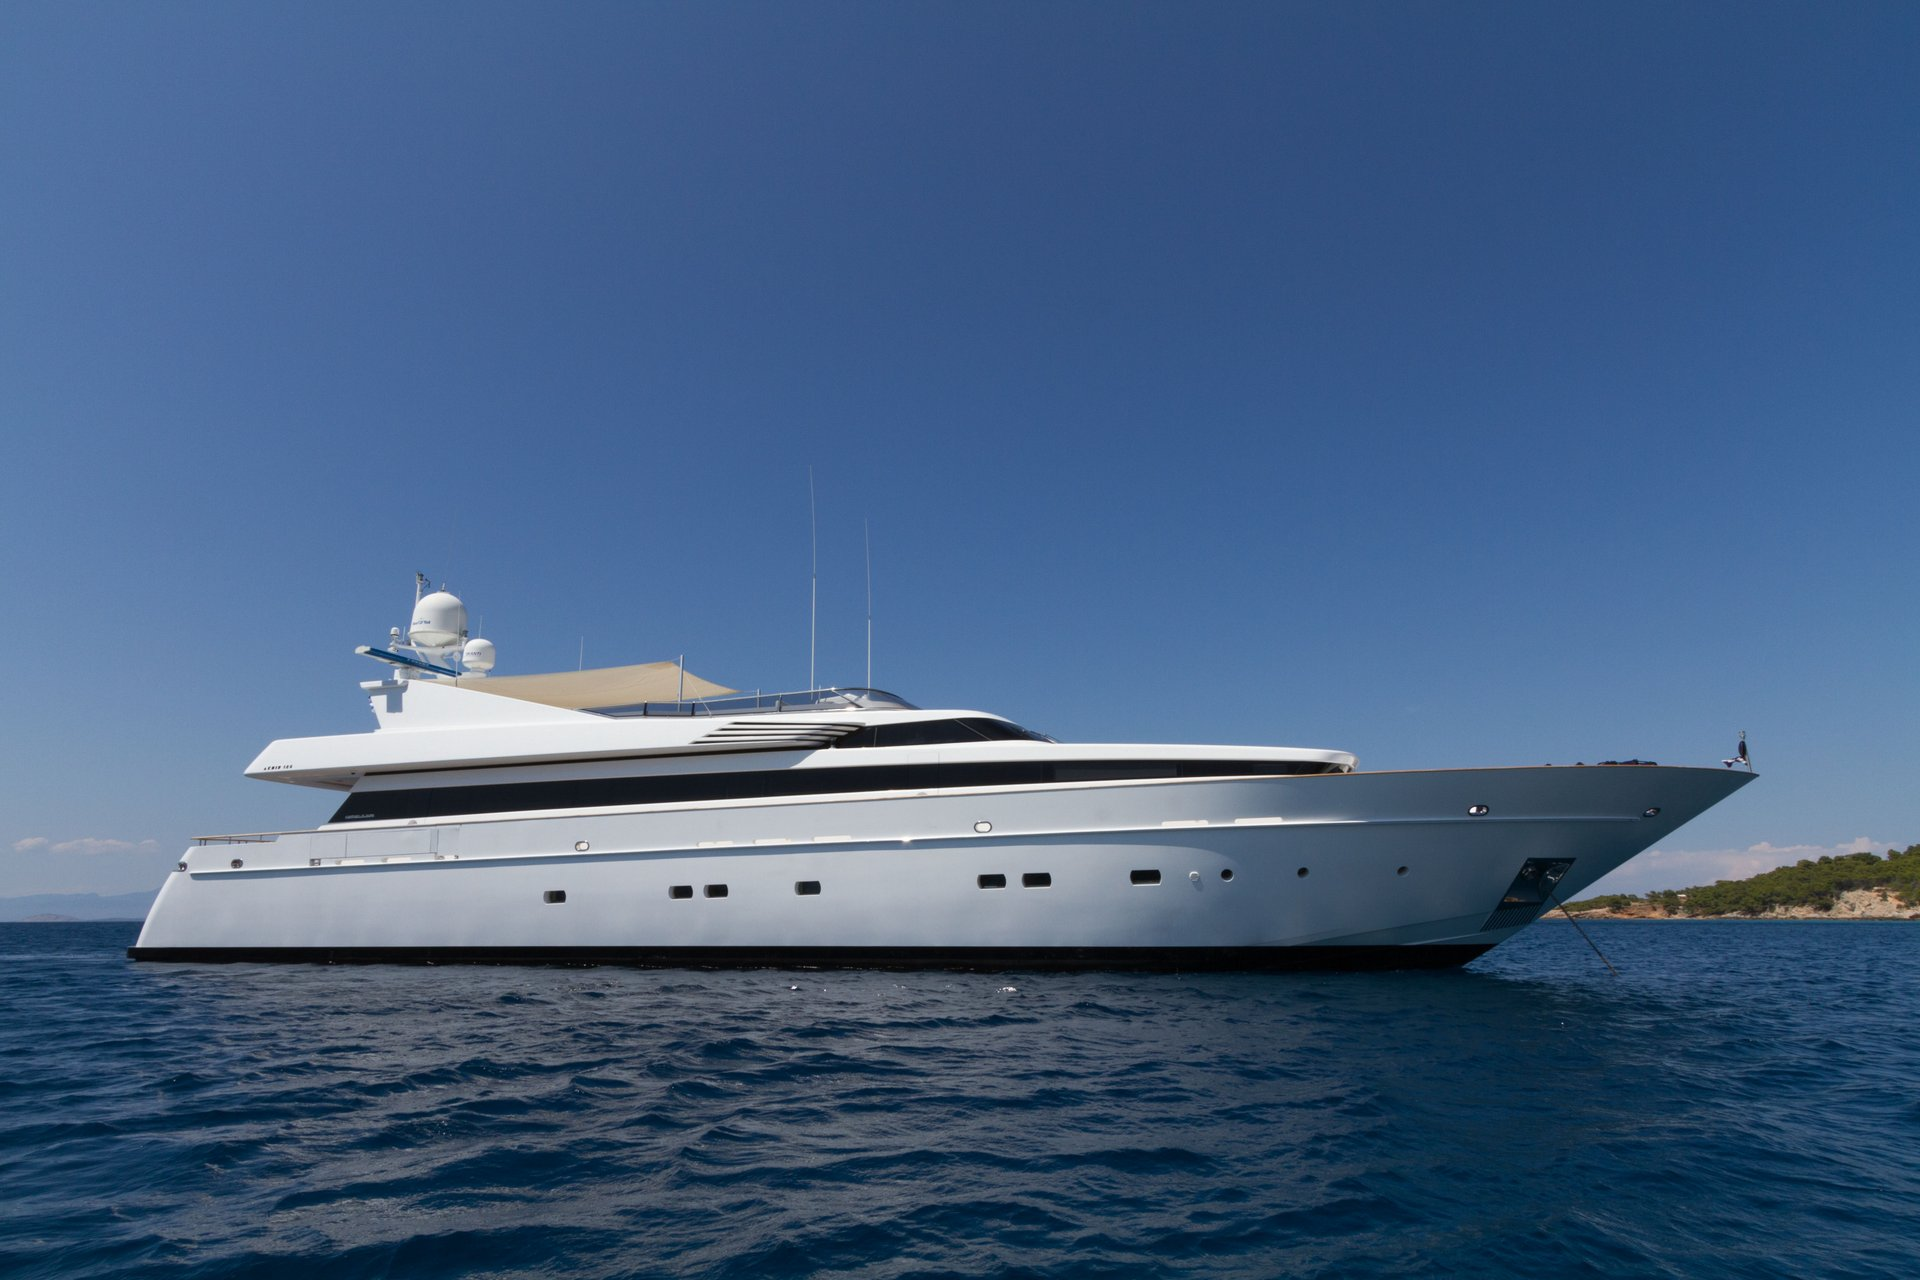 M/Y MABROUK yacht for charter anchored